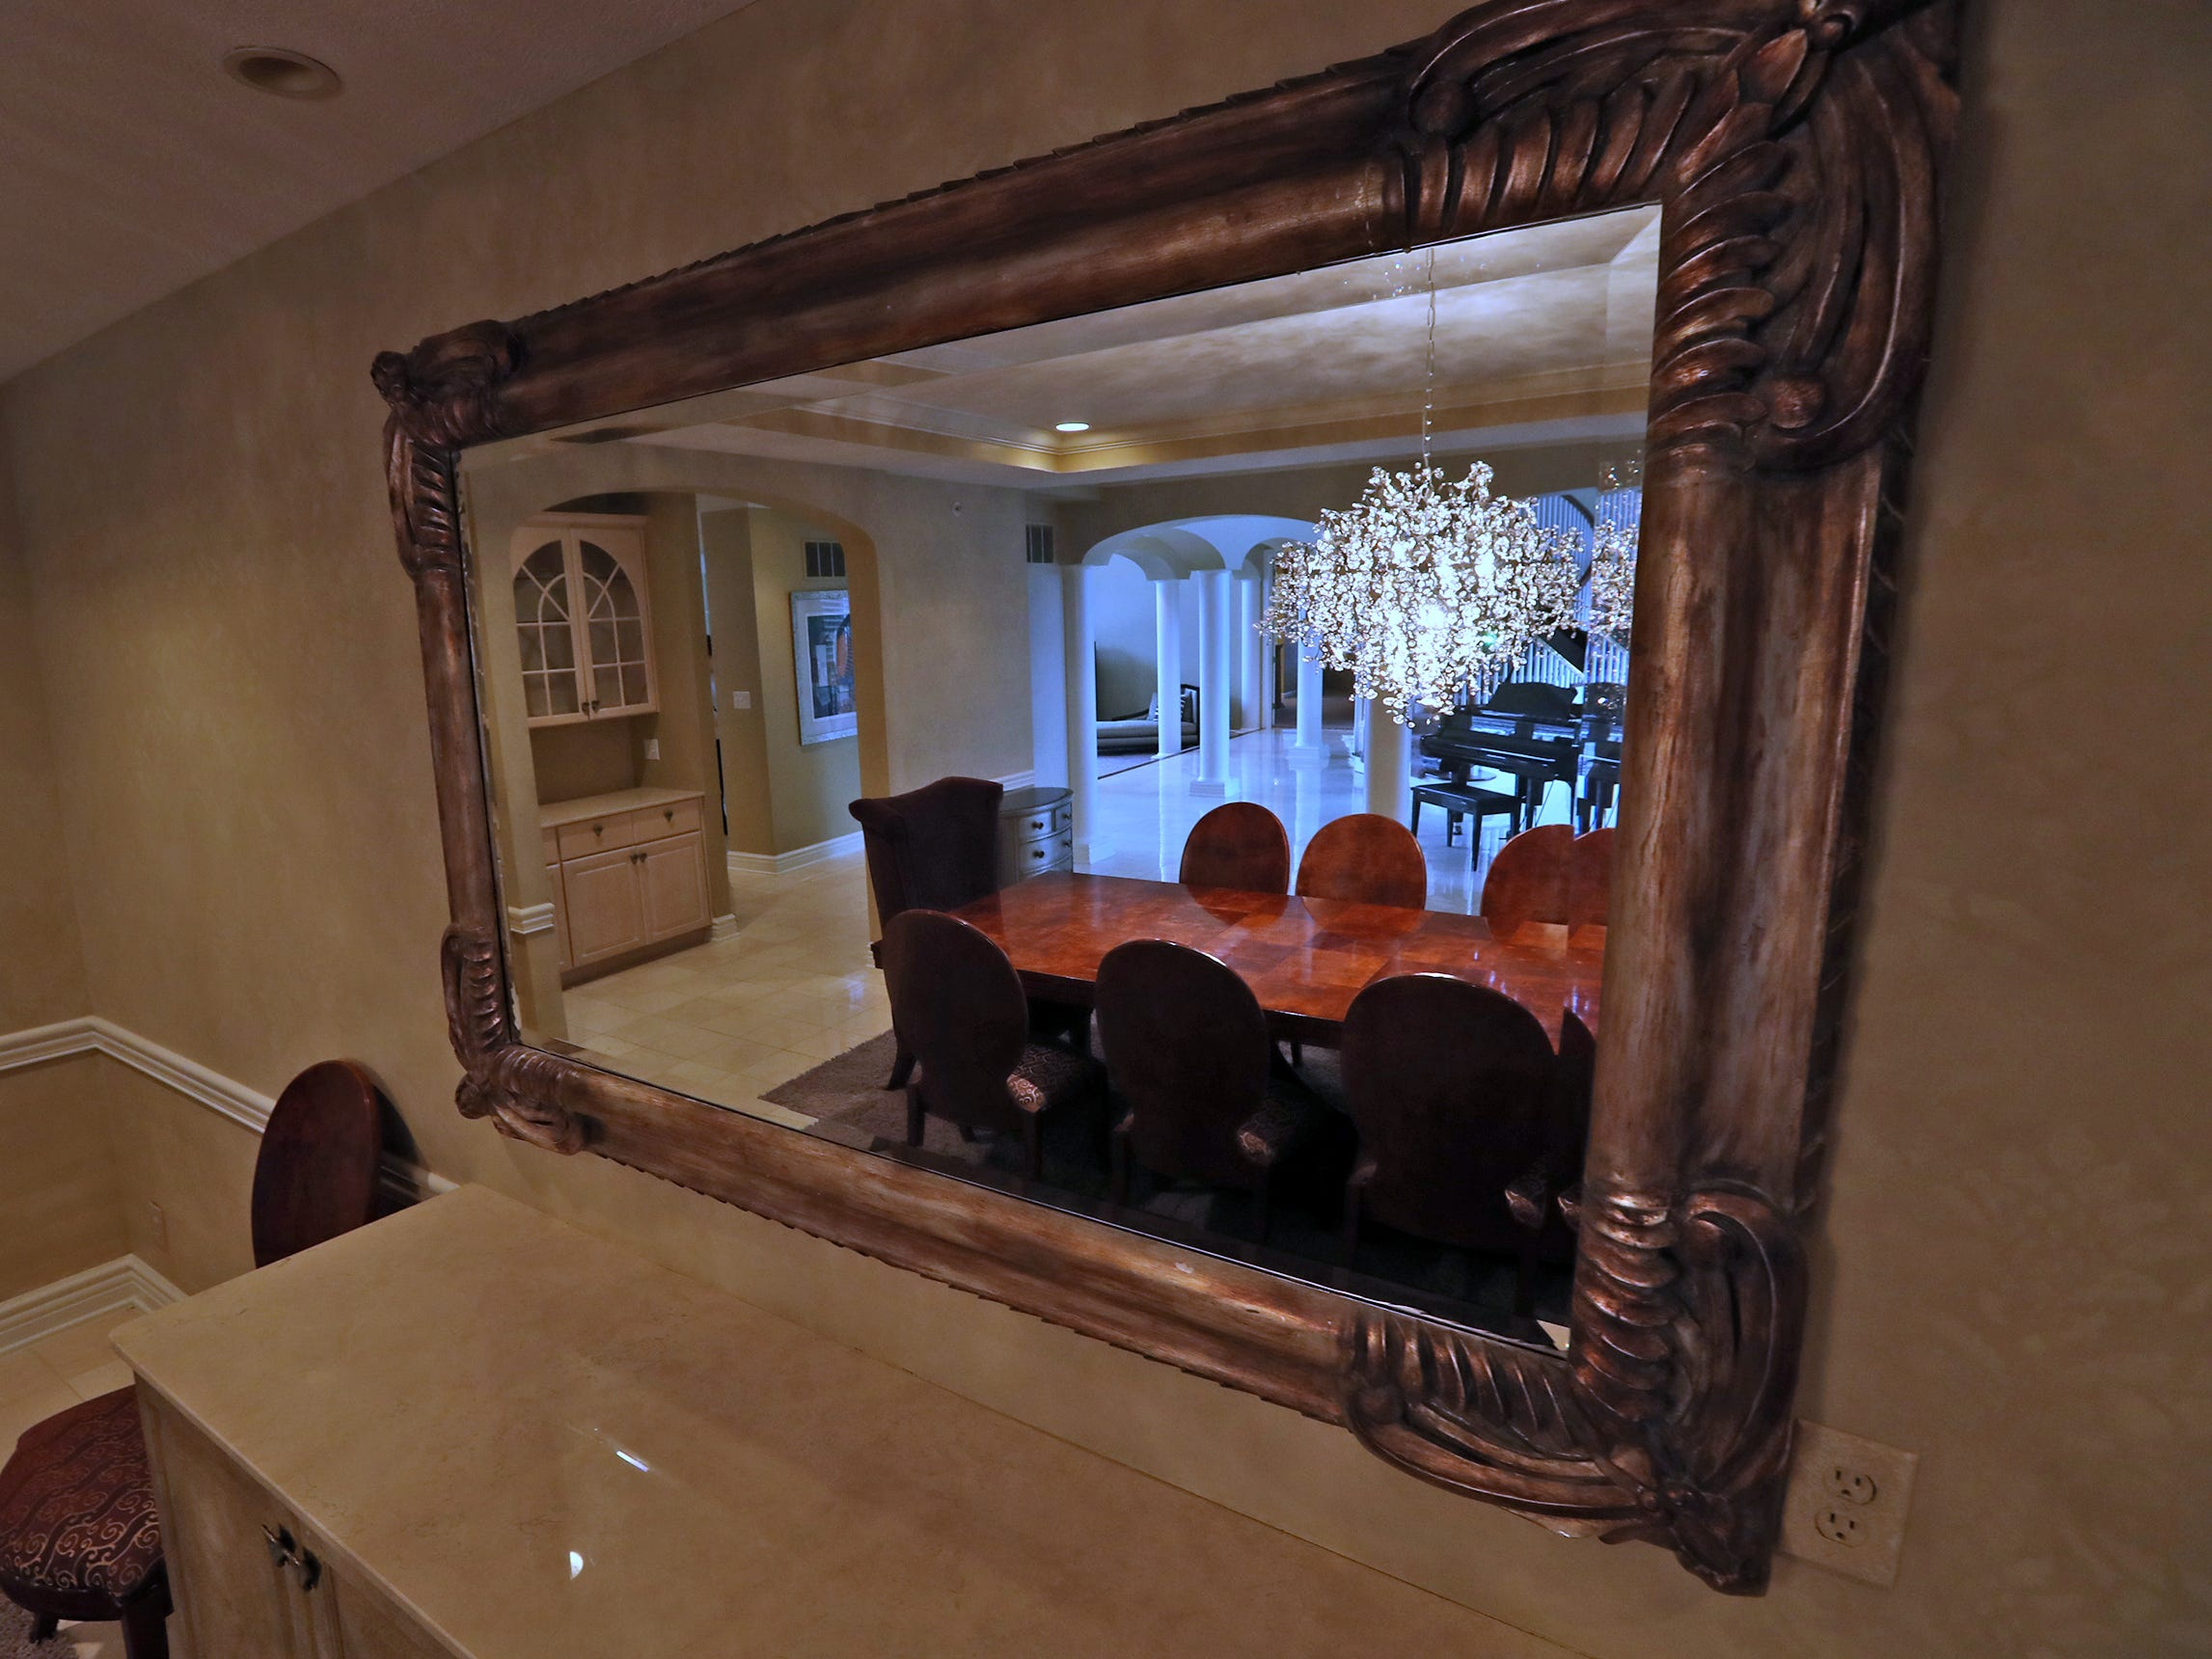 Reflected in a mirror is the dining room in the home at 1270 Laurelwood Ct. in Carmel, Friday, Dec. 28, 2018.